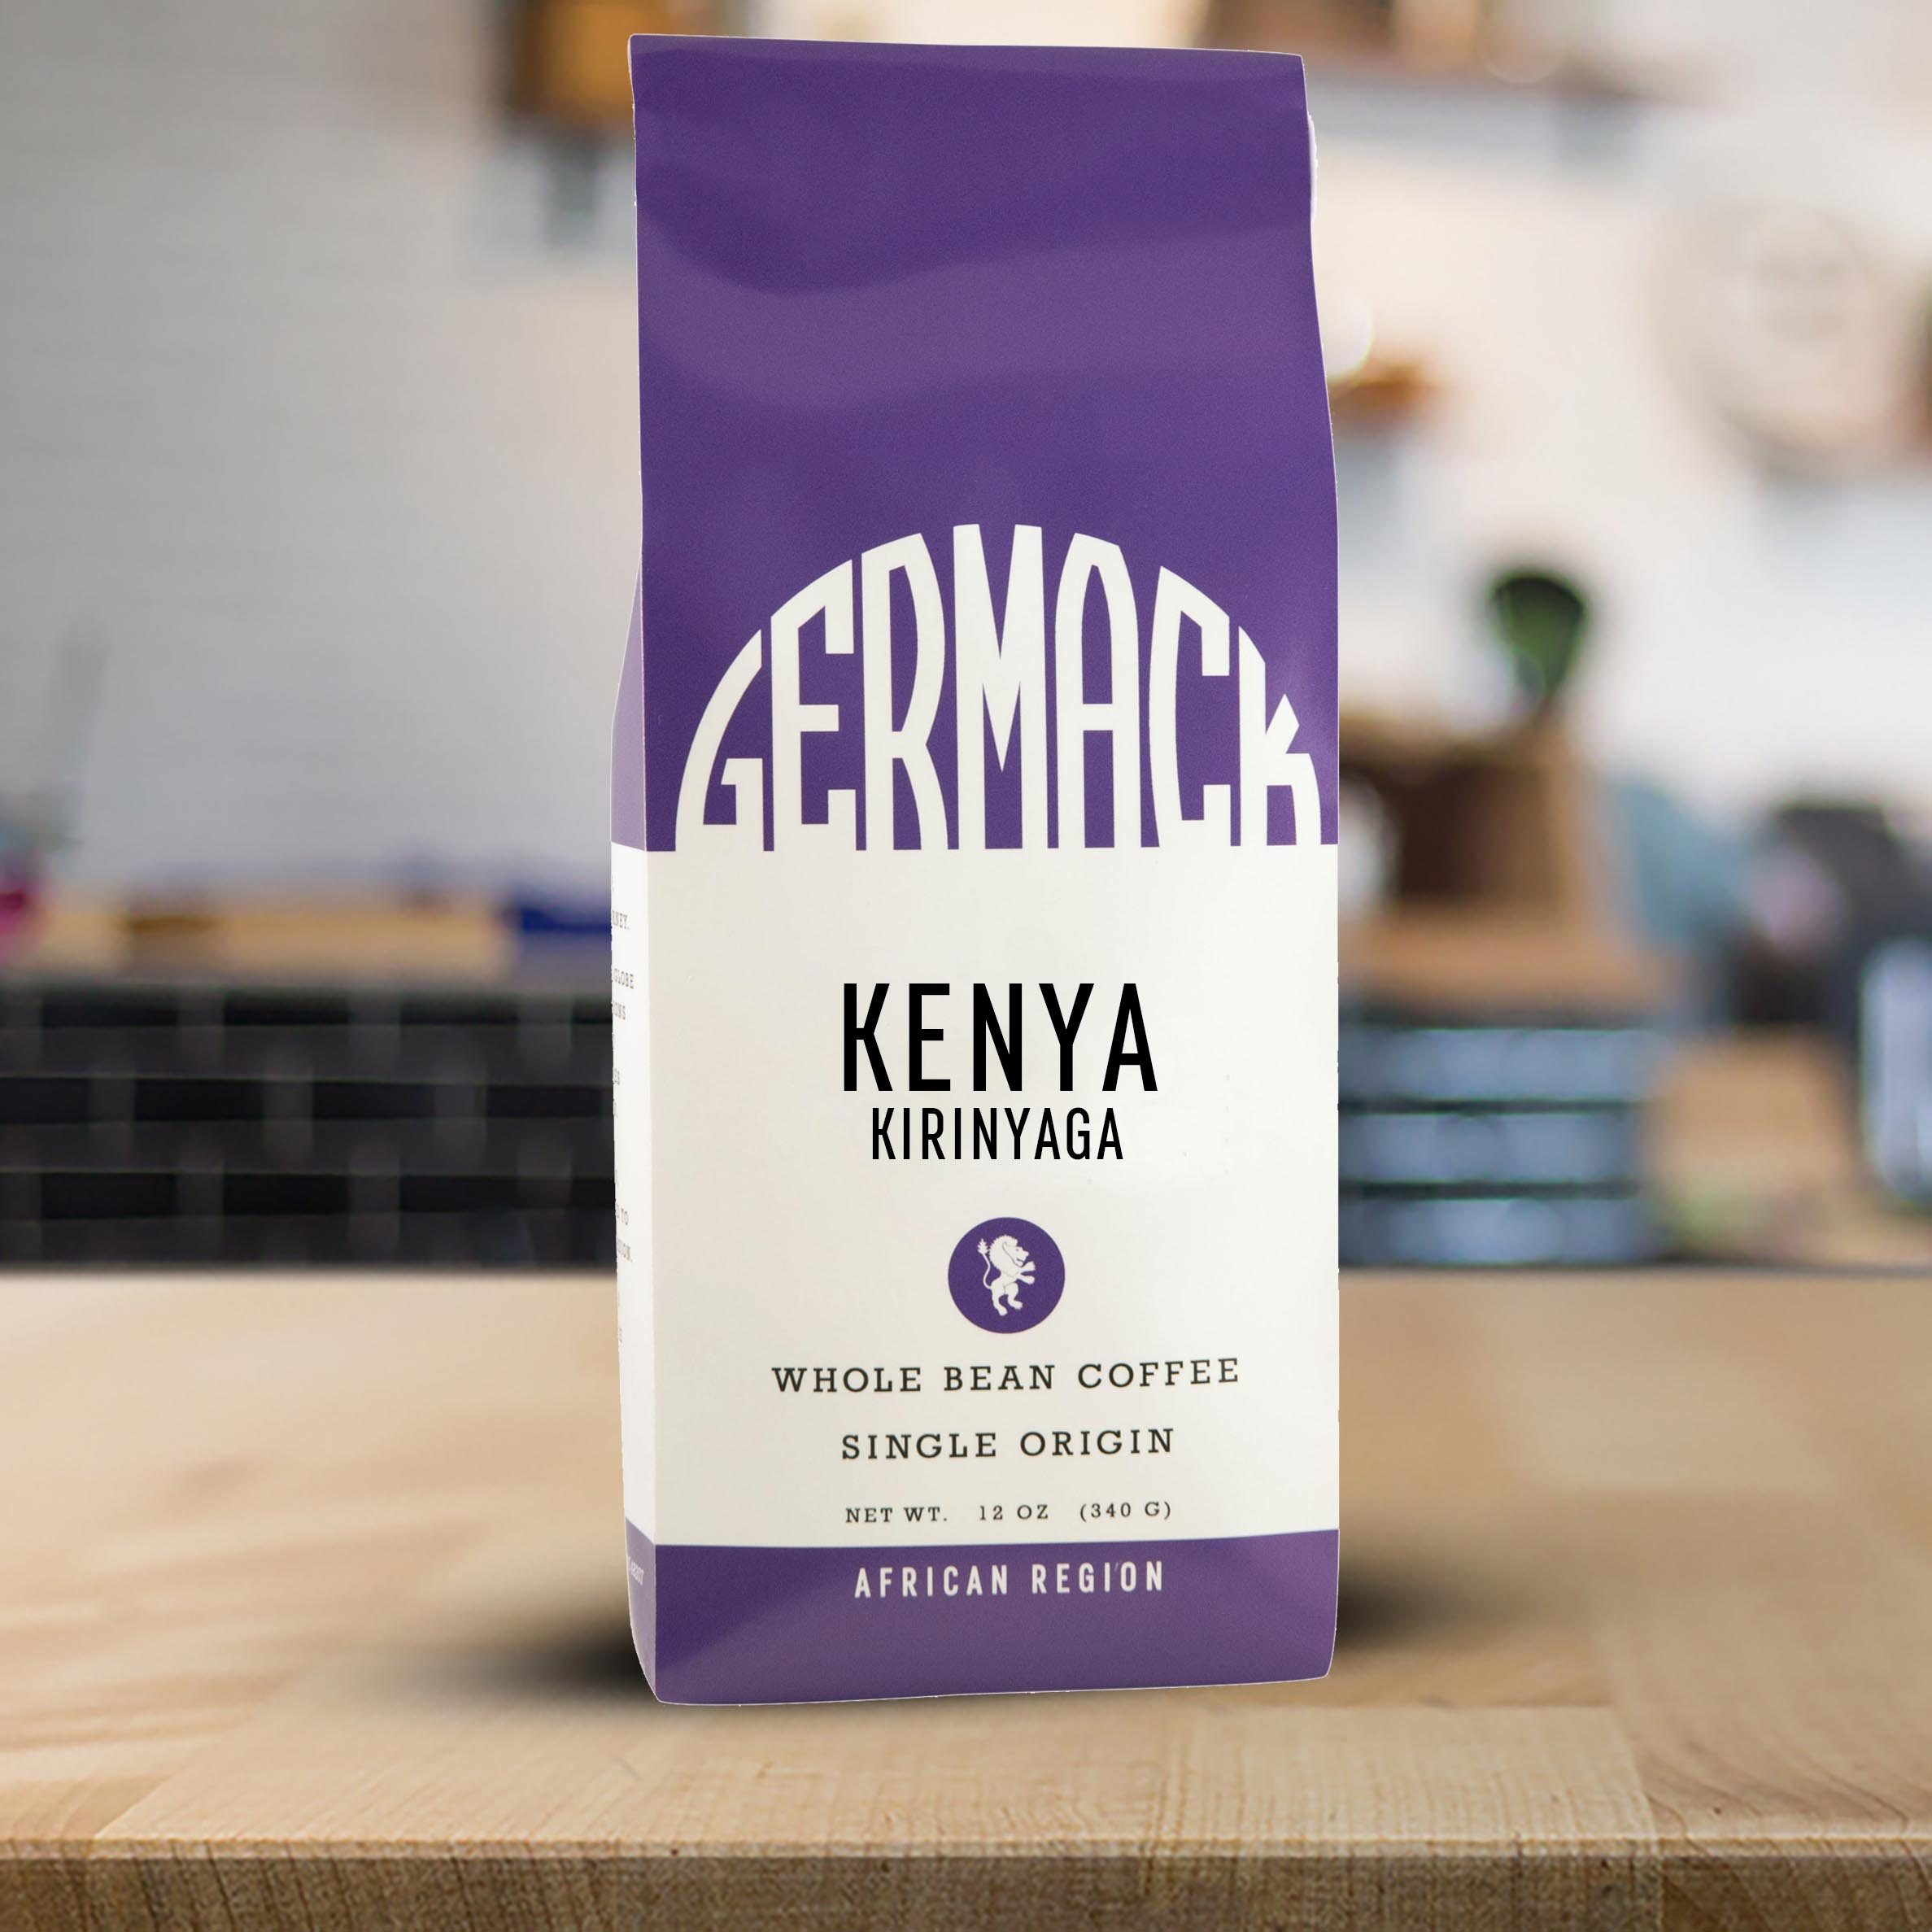 Germack Coffee Kenya Kirinyaga - 5 lb